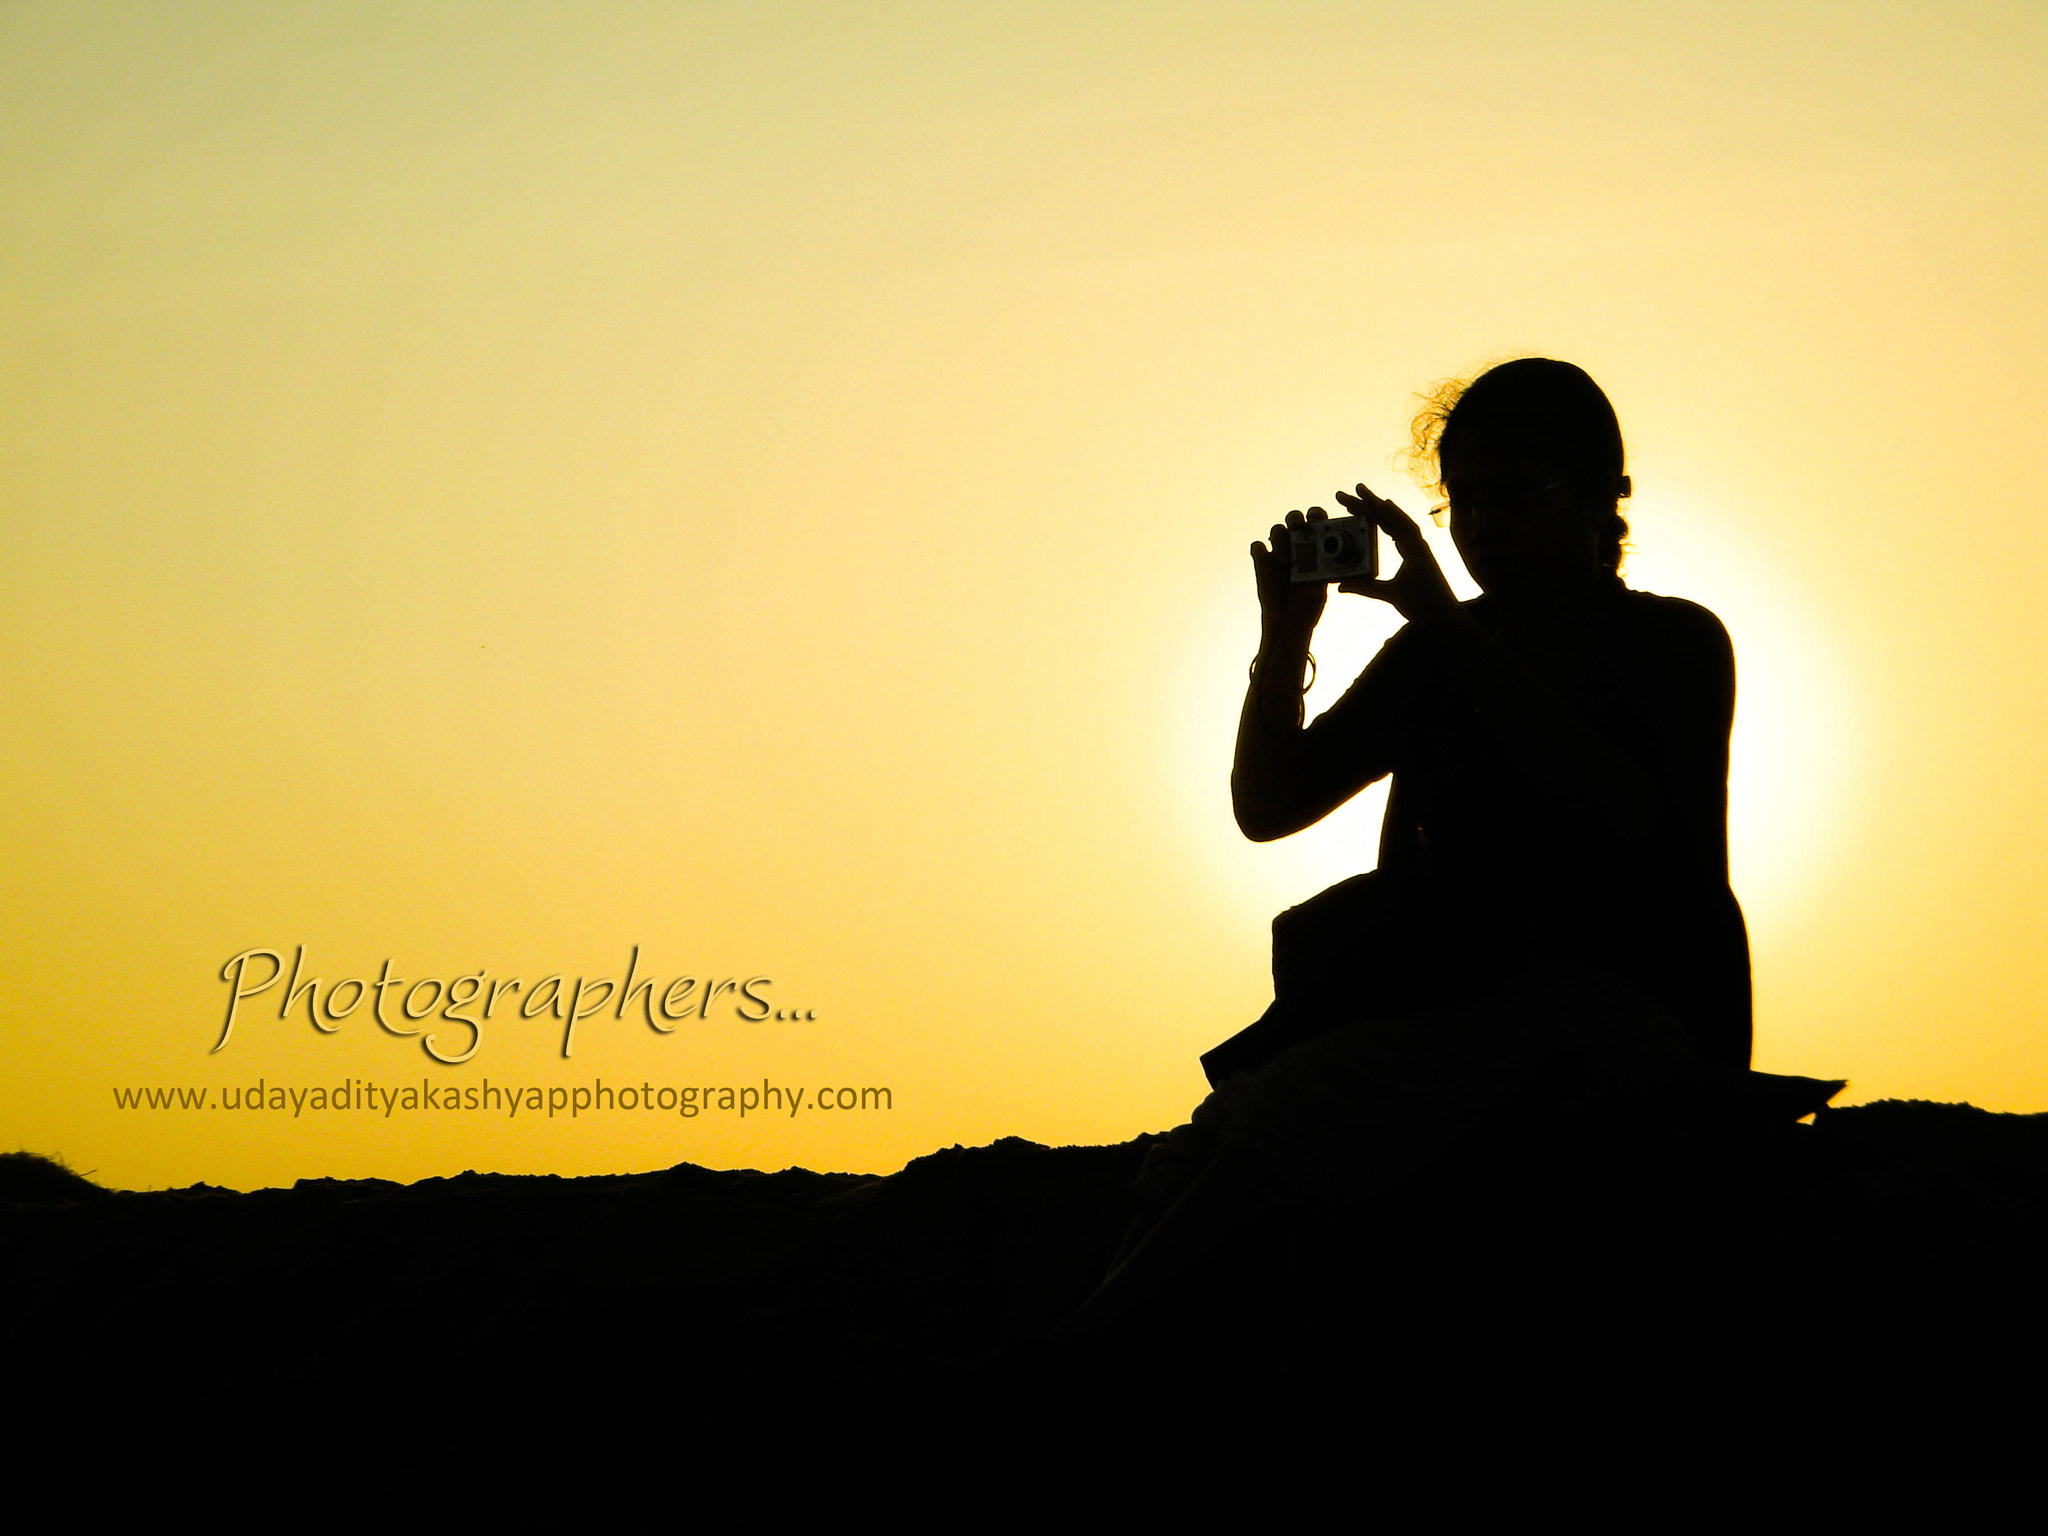 Photograph Silhouette of a photographer... by Udayaditya Kashyap on 500px